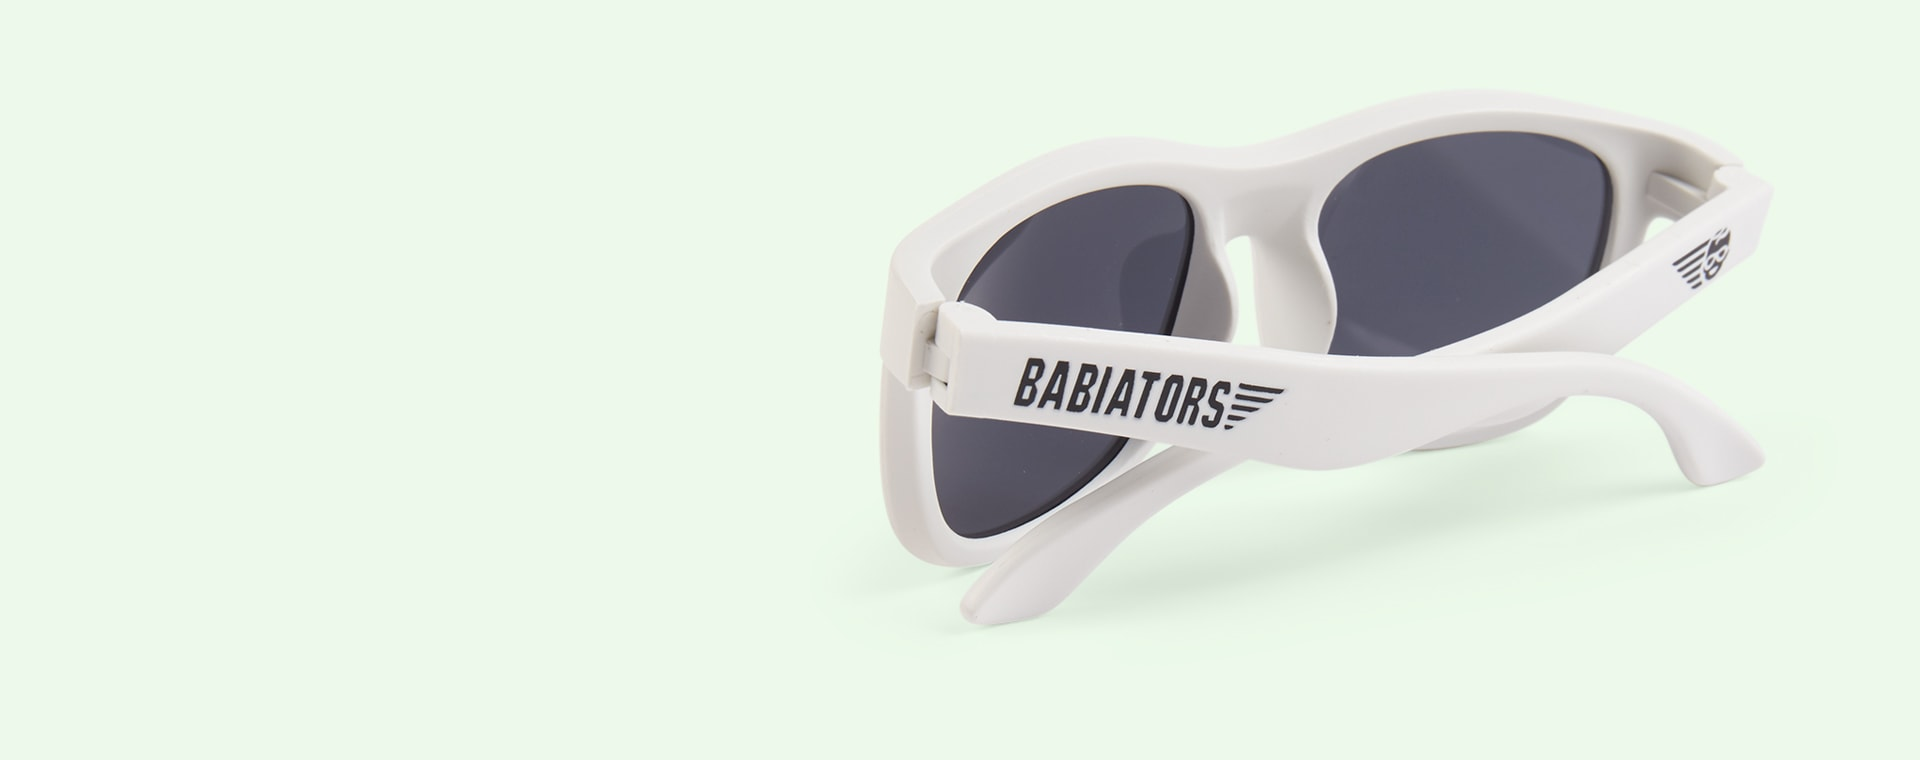 Limited Edition Wicked White Babiators Original Navigator